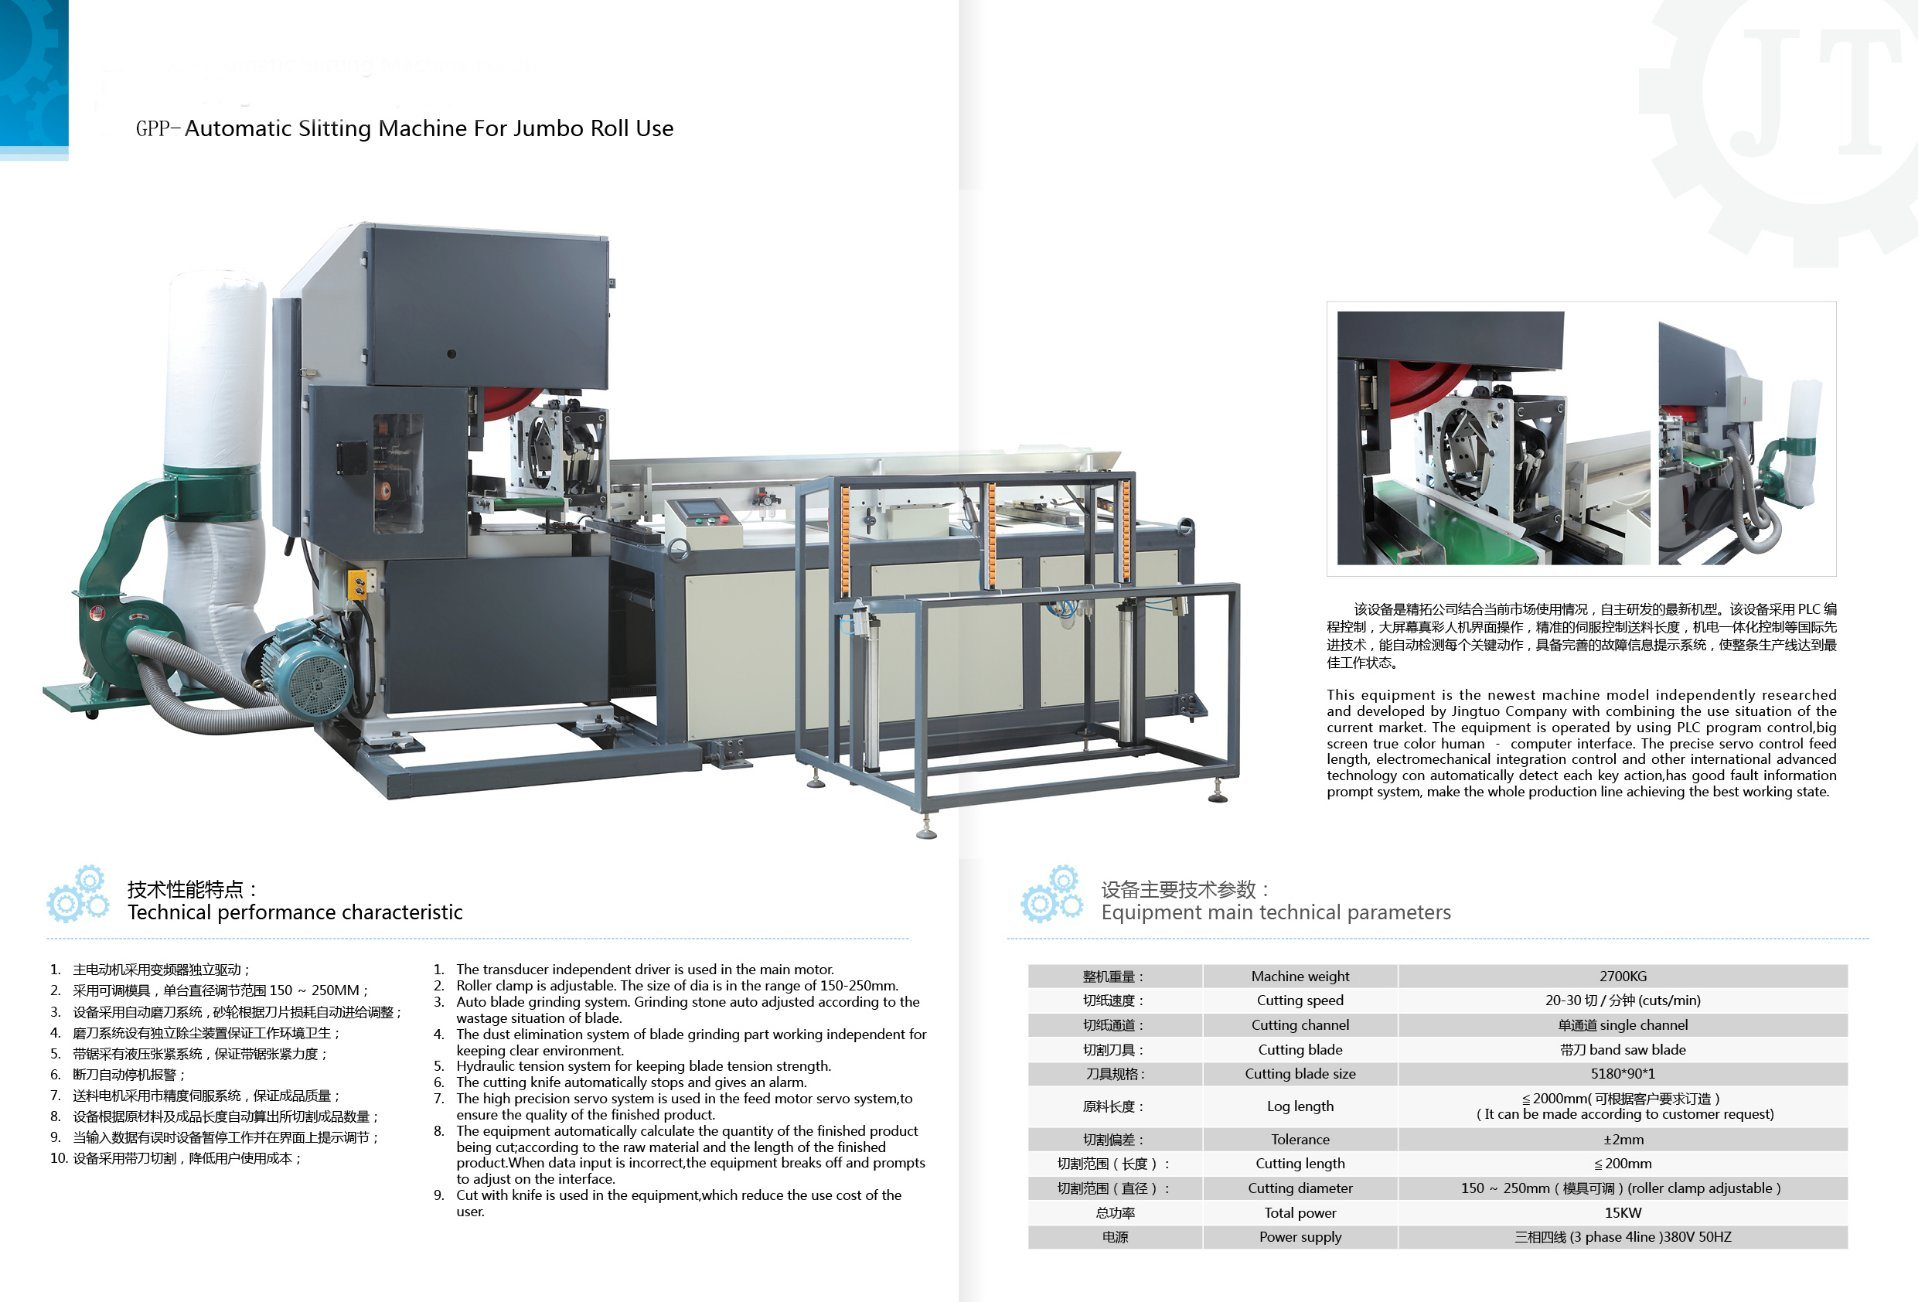 Automatic Slitting Machine for Jumbo Roll Use